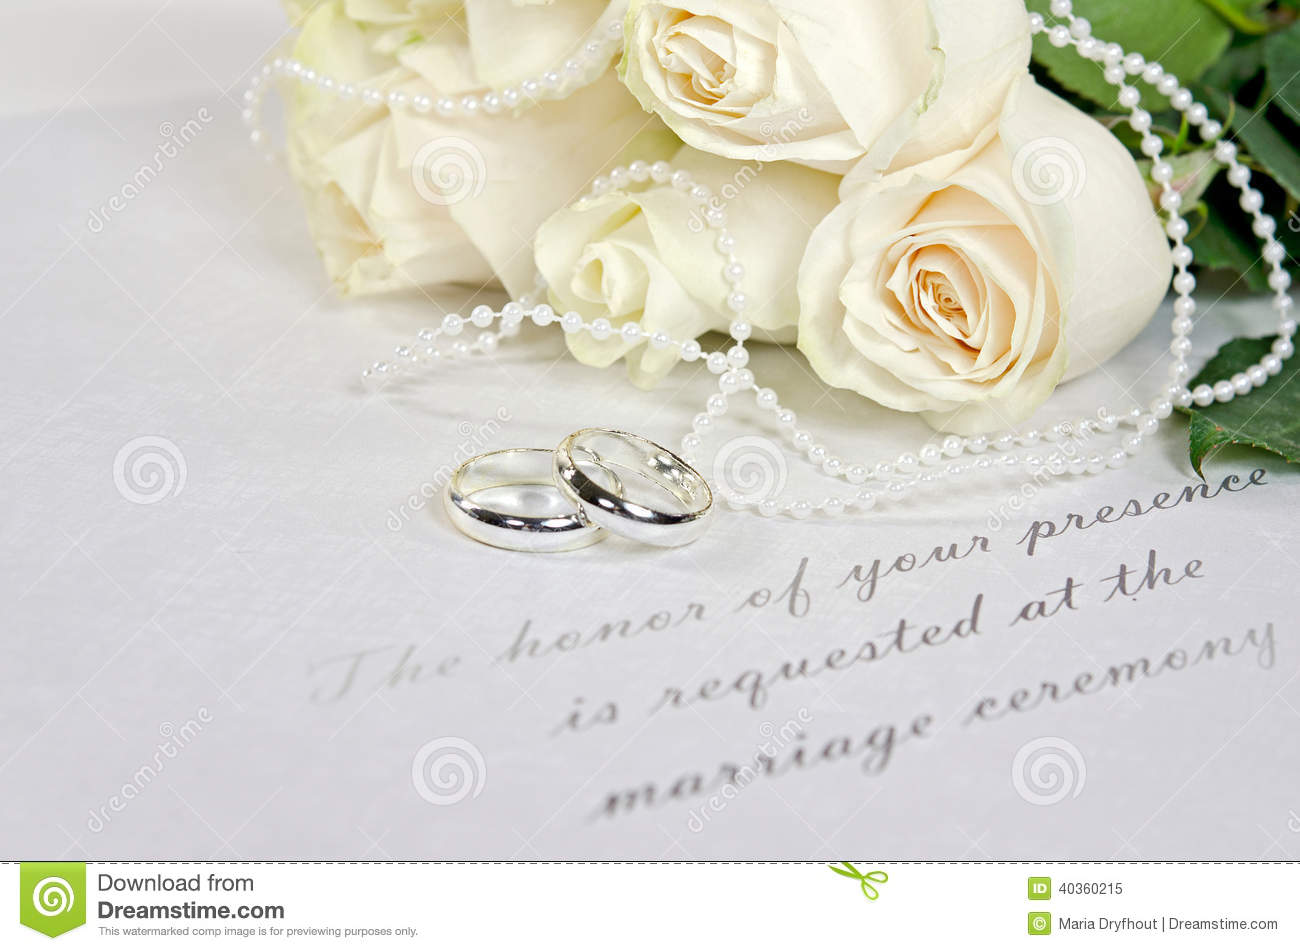 White Rose Bouquet And Wedding Rings Stock Image Image of invite